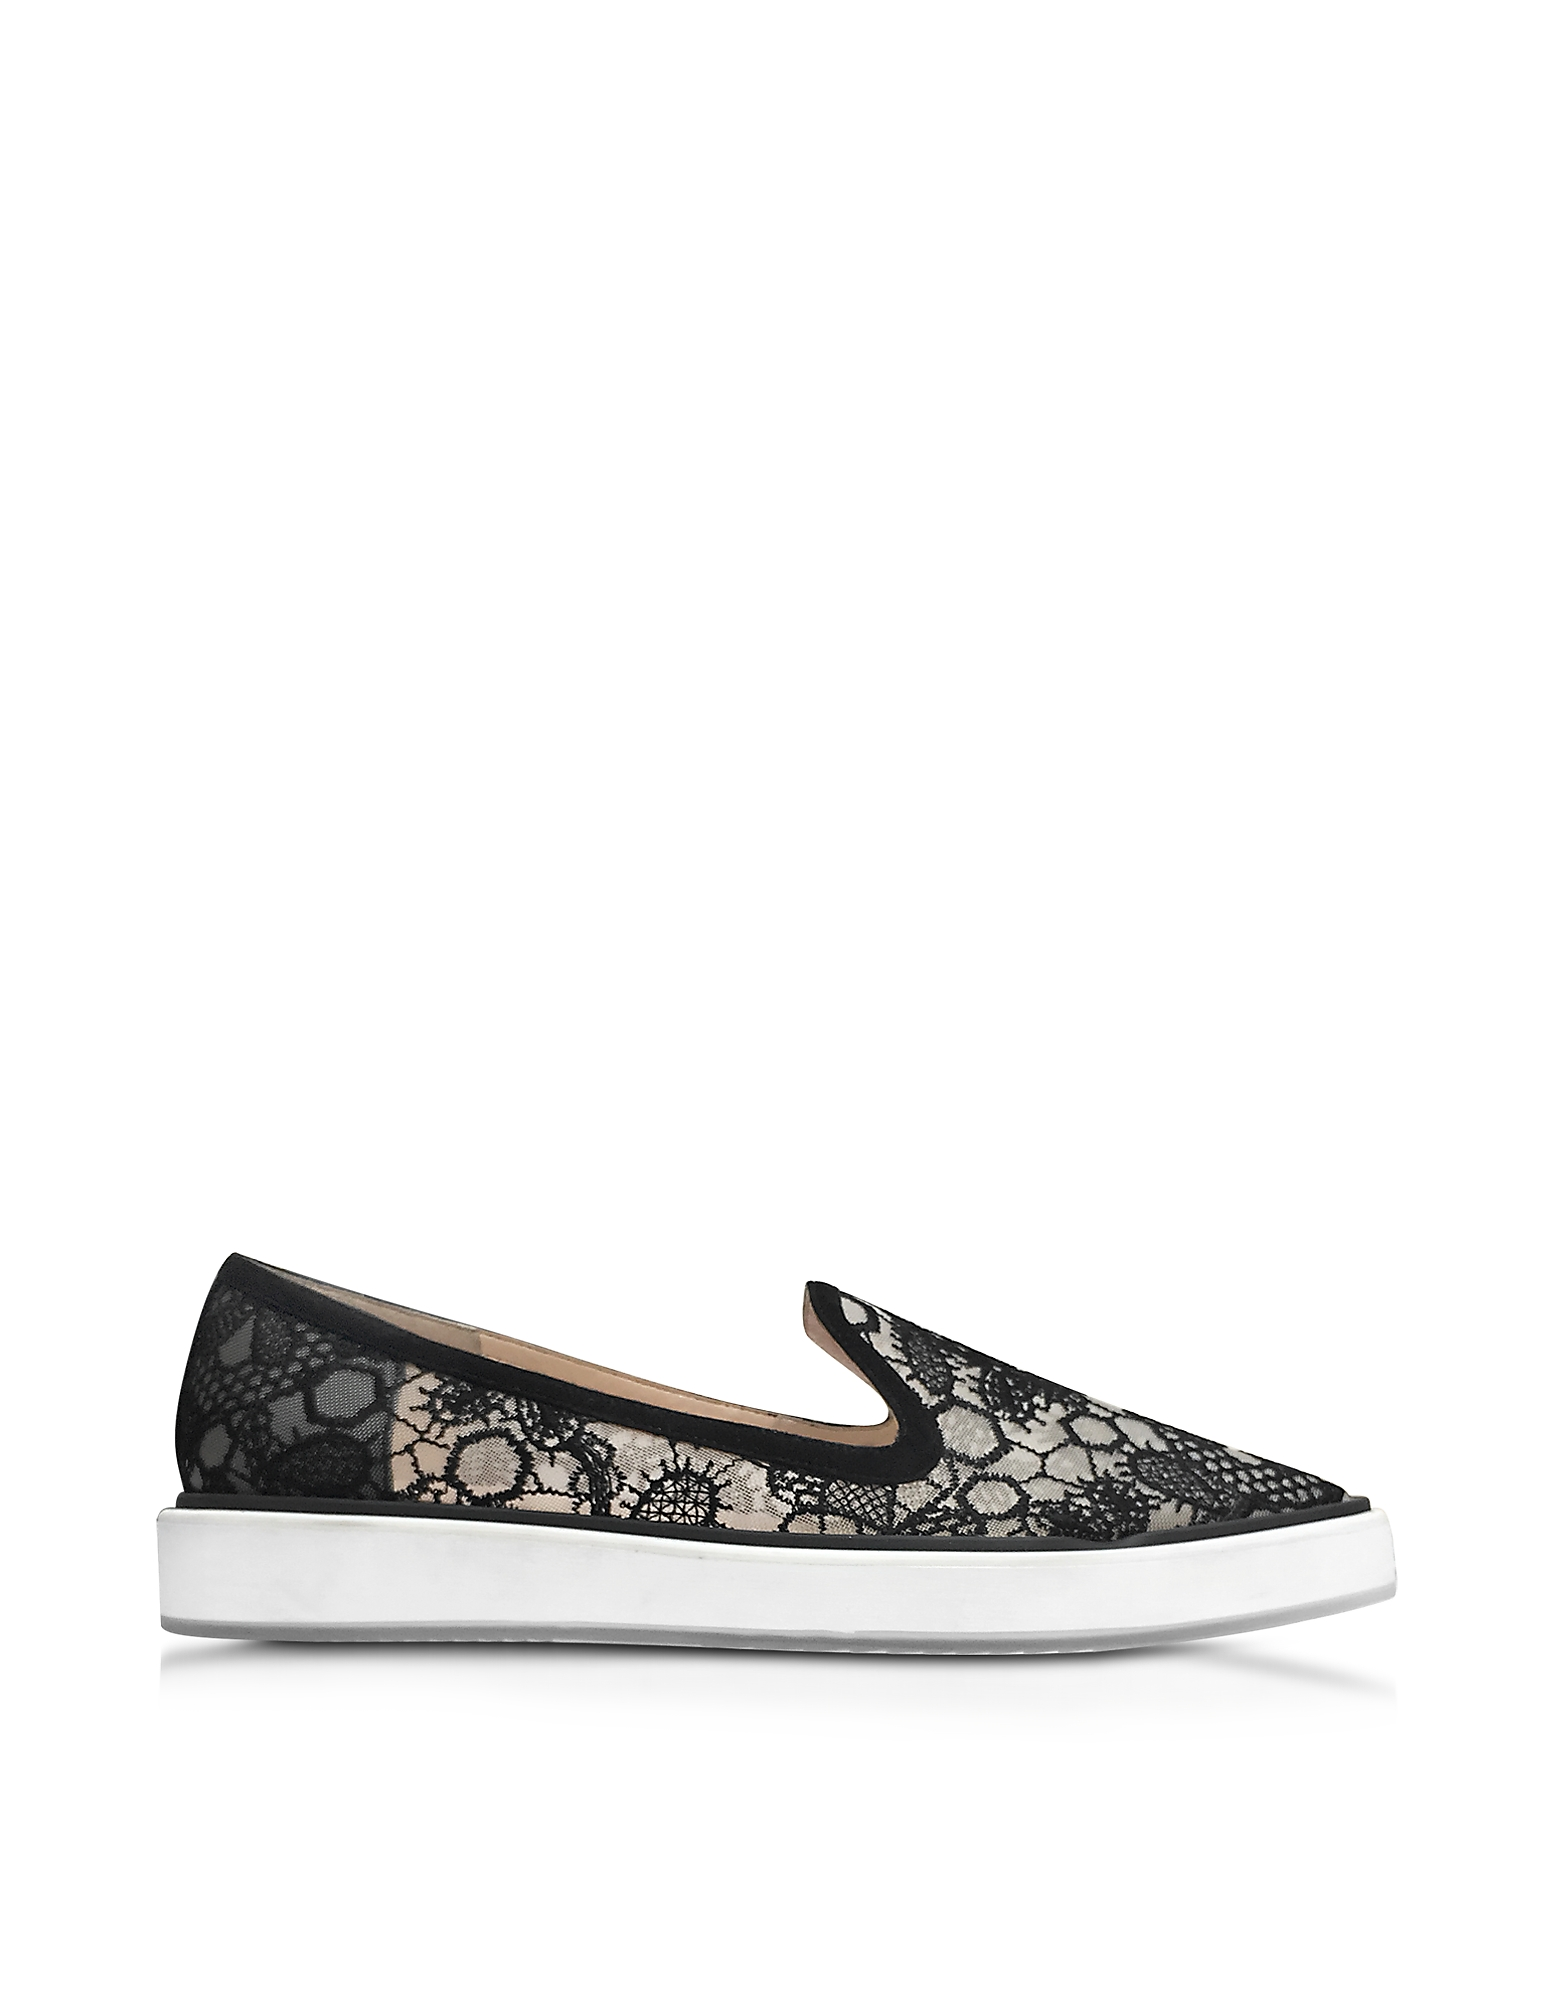 Nicholas Kirkwood Shoes, Alona Black Viscosa Lace Slipper